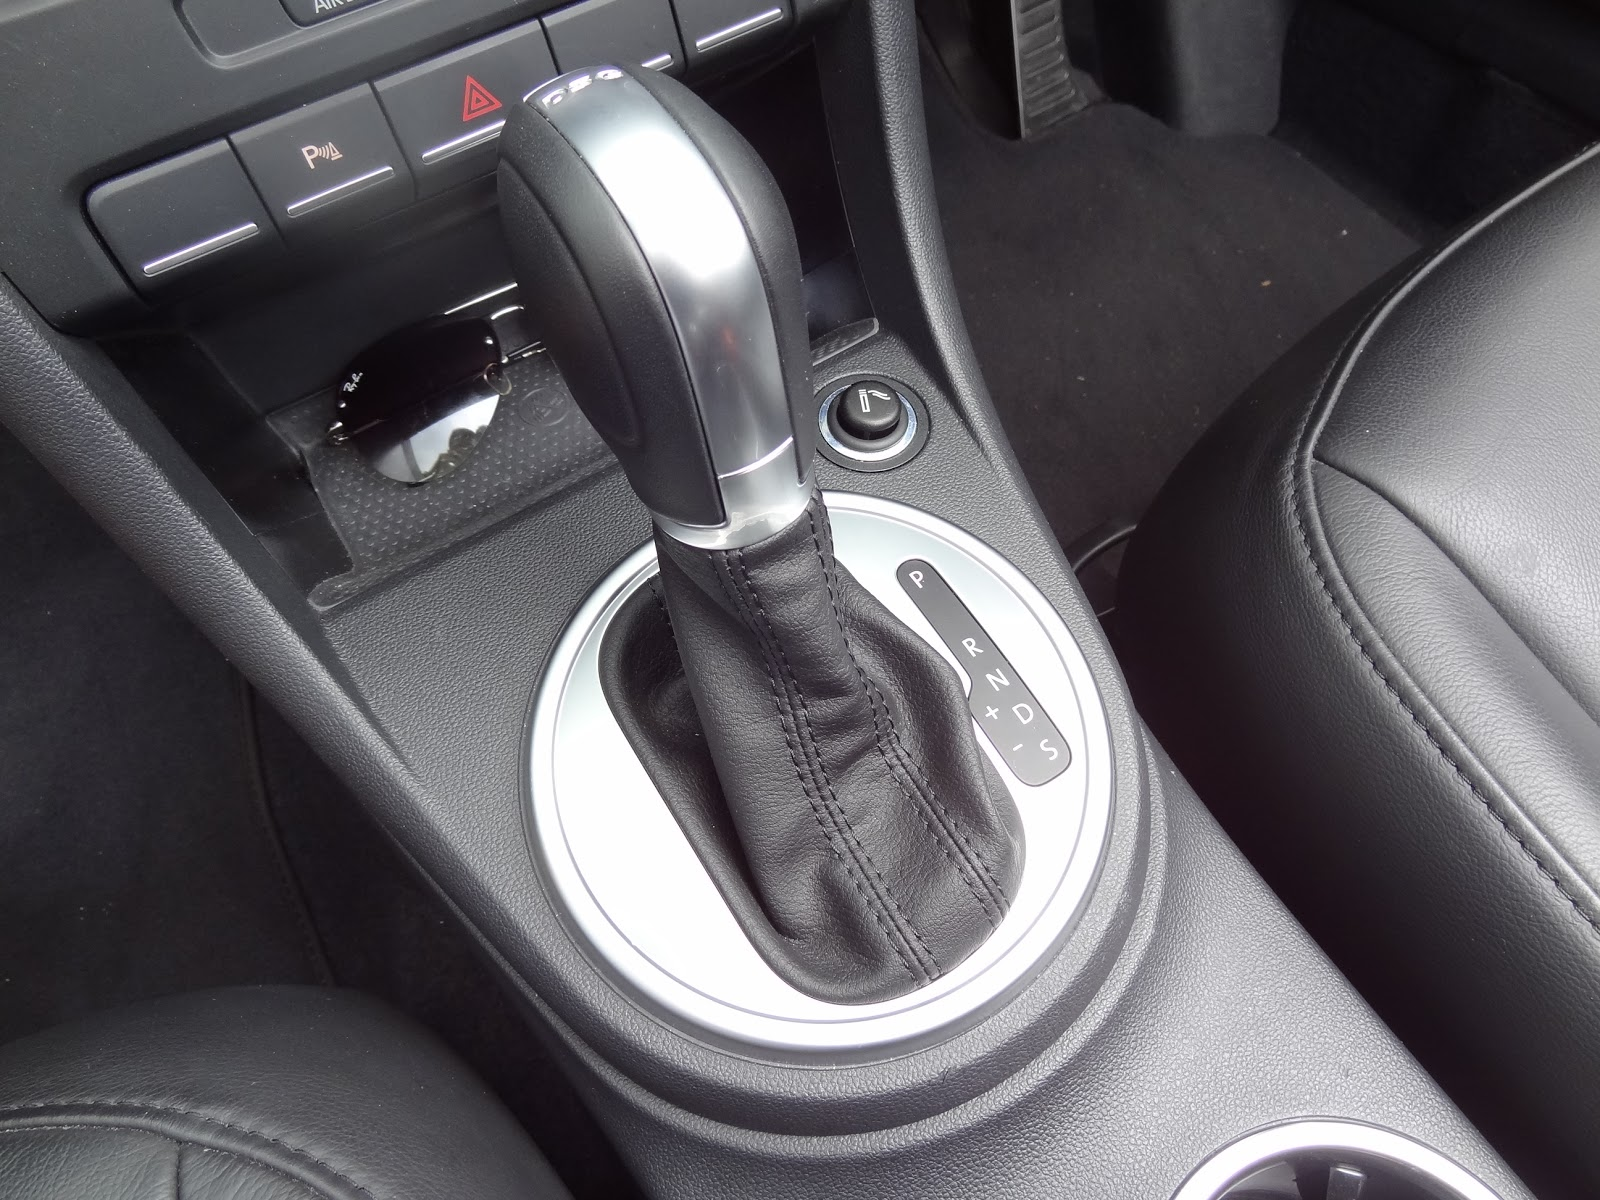 """The DSG (Direct Shift Gearbox) allows the driver to switch between  automatic and manual transmission. By pushing the gear stick to the left at  the """"D"""" ..."""